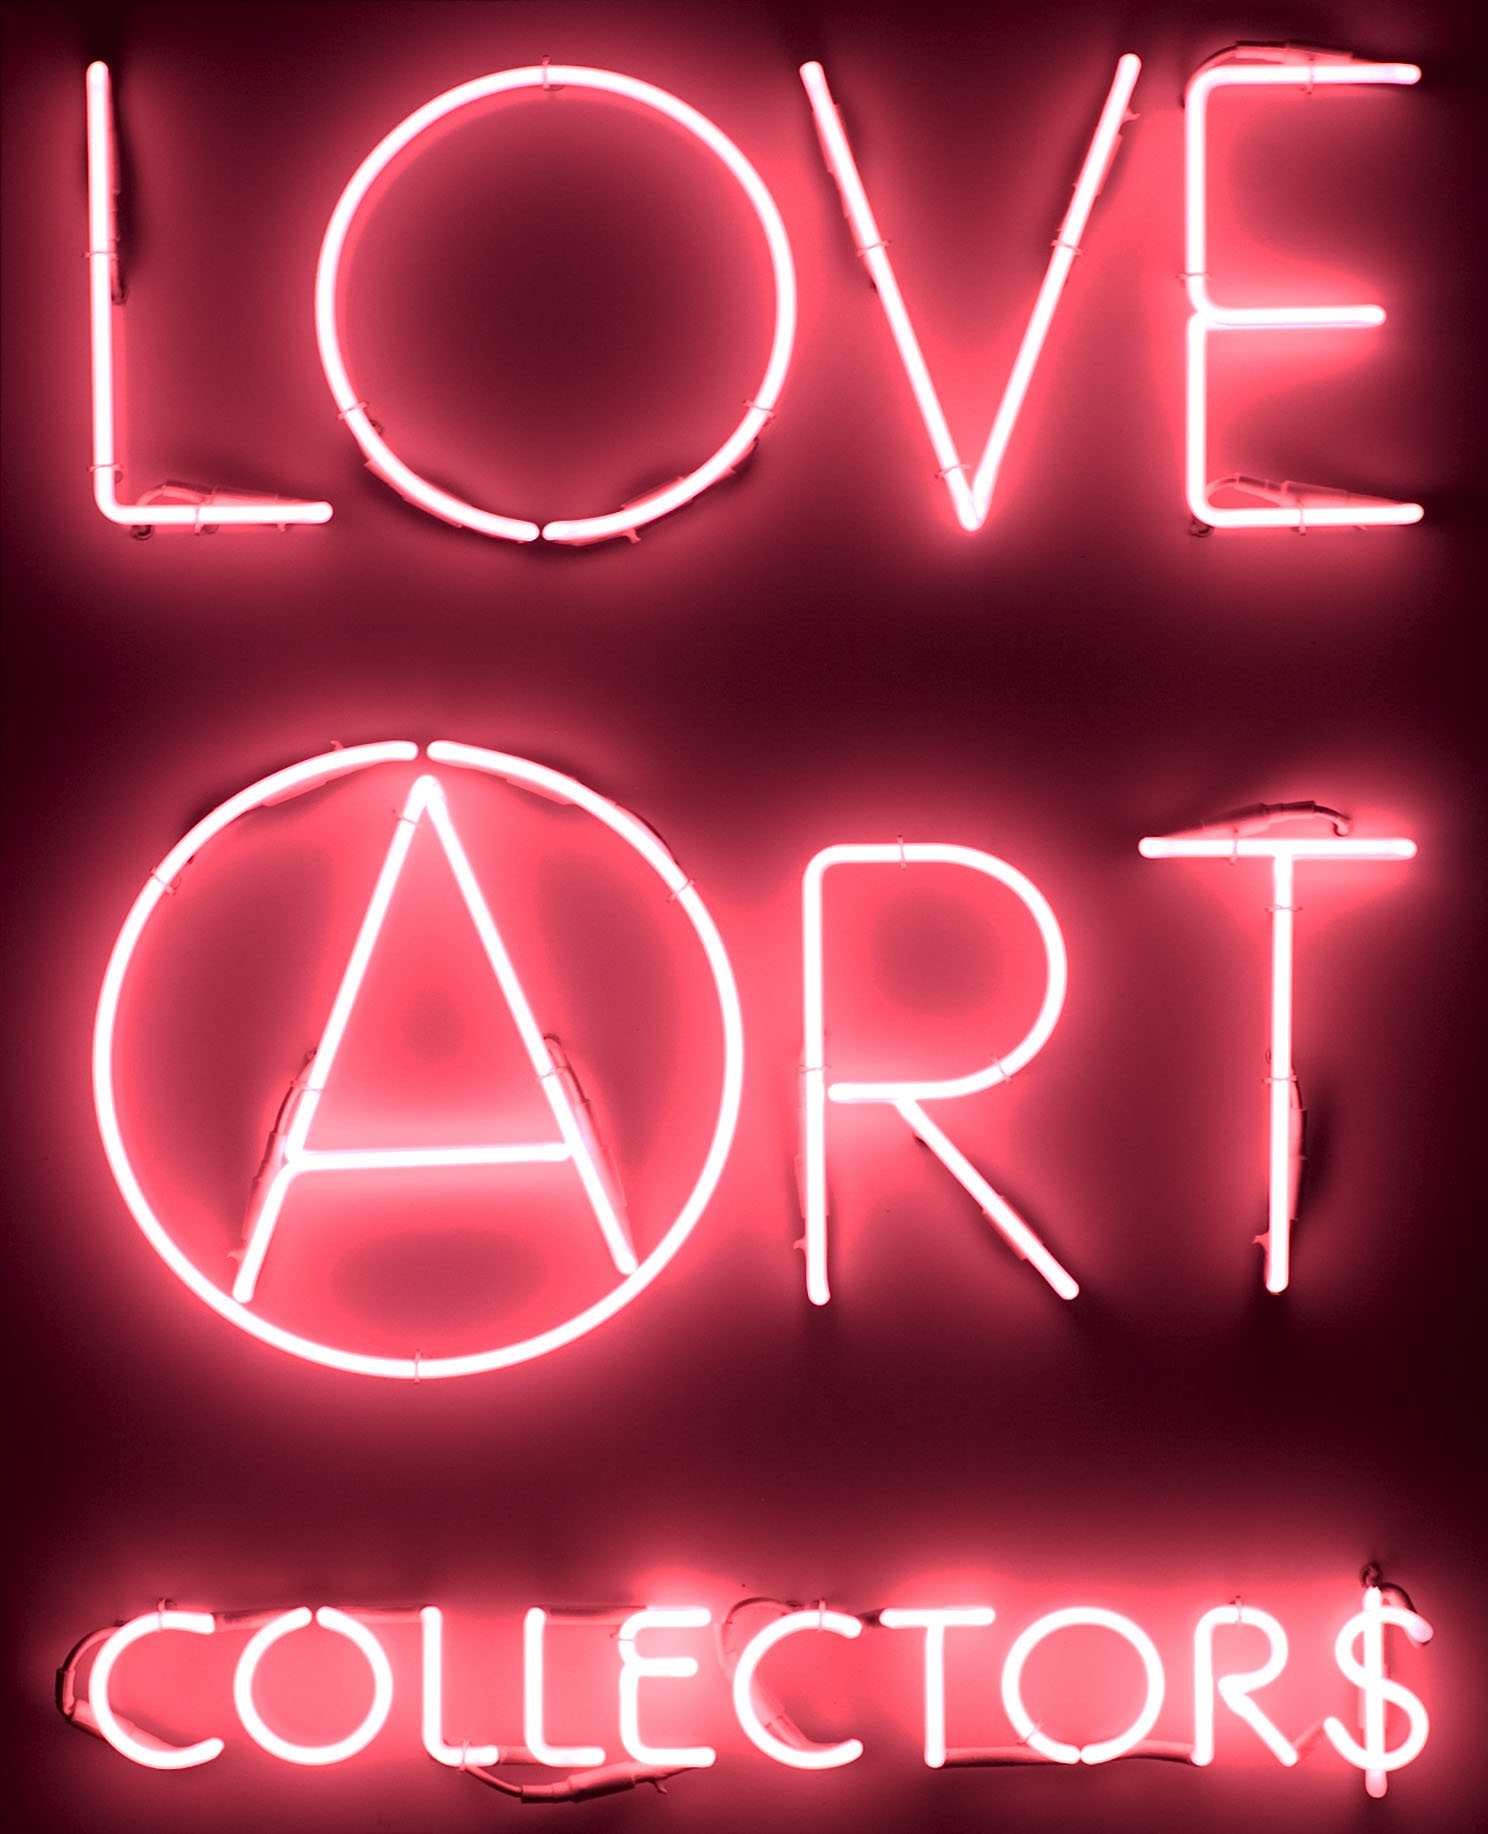 3A, LOVE ART COLLECTOR$, KINGS, 1-5 pink, cm 120x96, 2008, courtesy Marséll